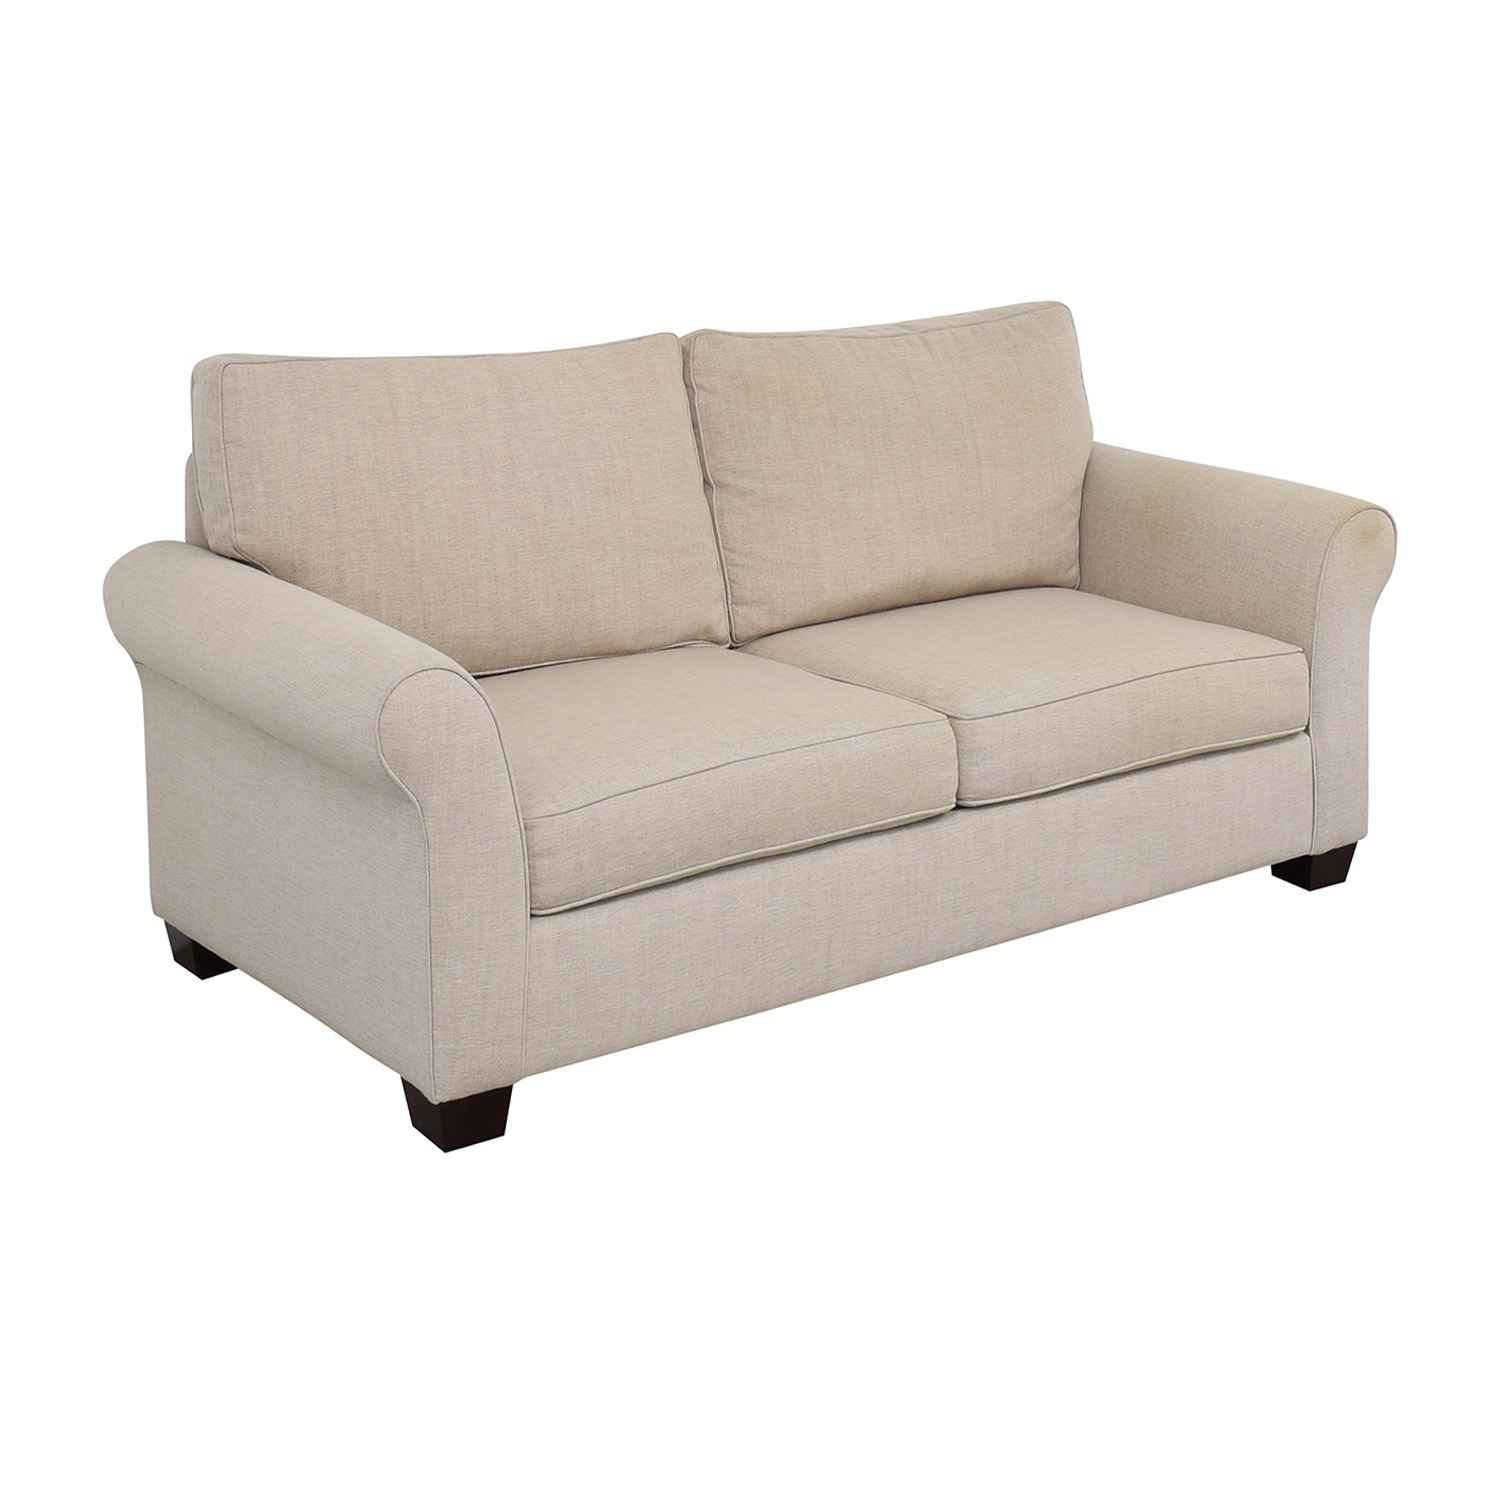 shop Pottery Barn Pottery Barn Comfort Roll Arm Upholstered Sofa online